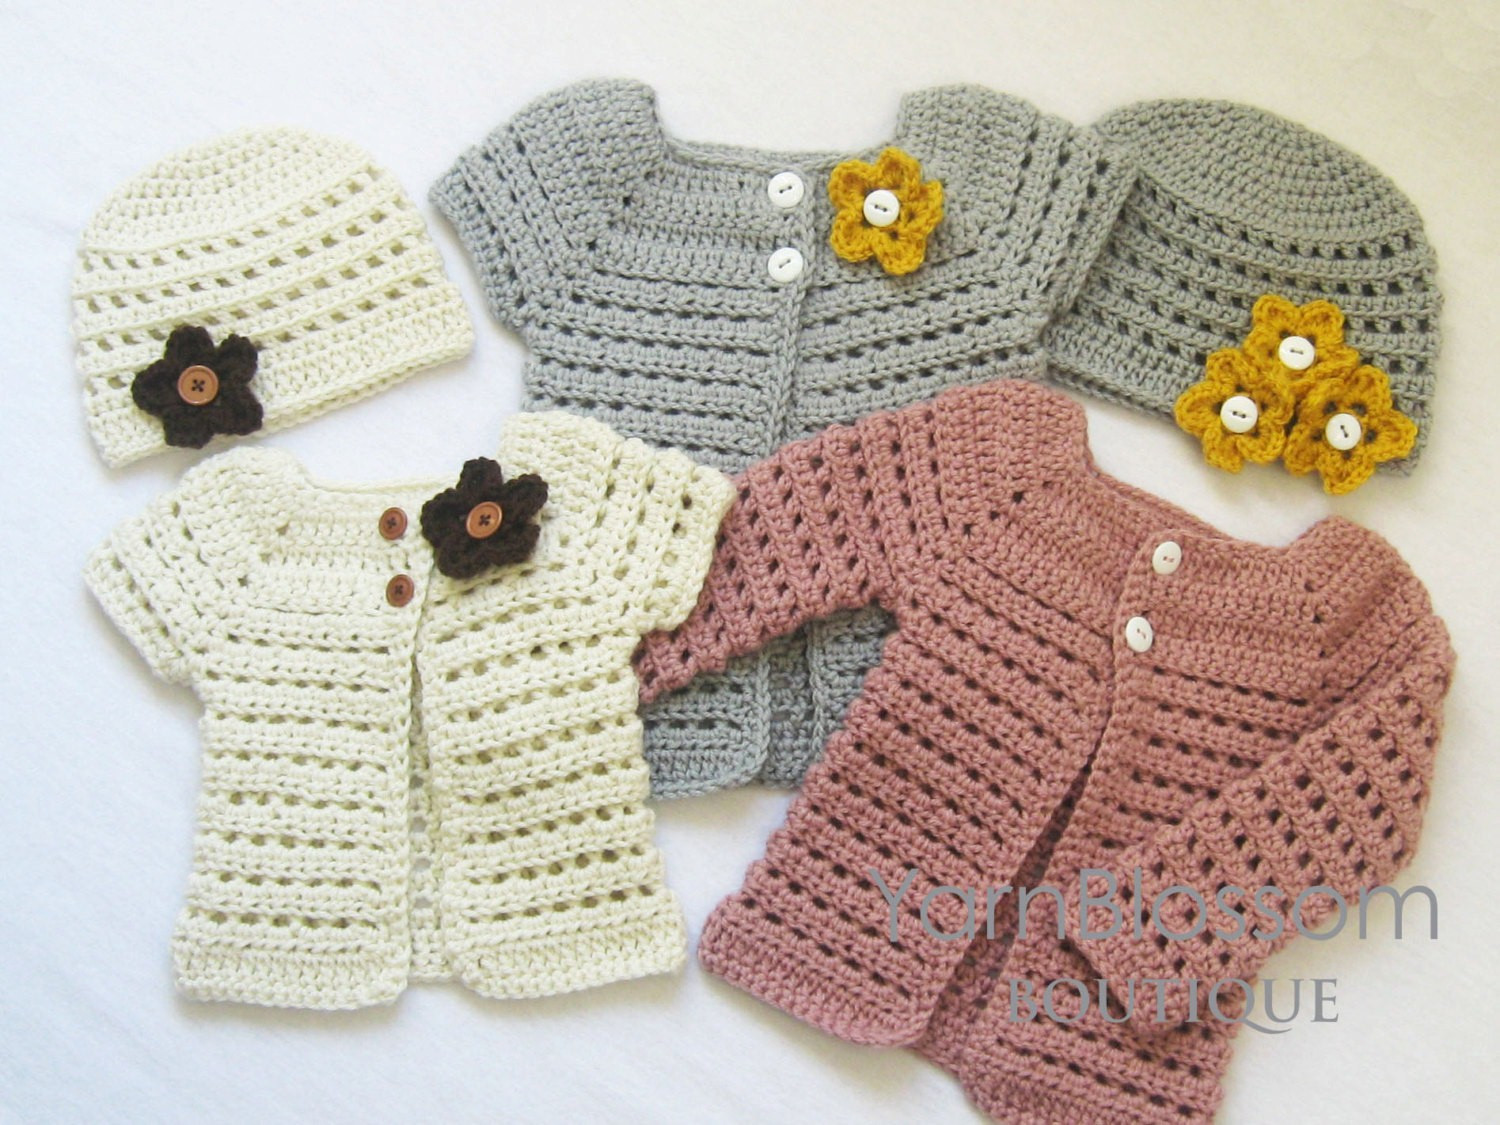 Baby Clothes Patterns New Free Crochet Patterns for Baby Boy Clothes Of Wonderful 46 Pictures Baby Clothes Patterns